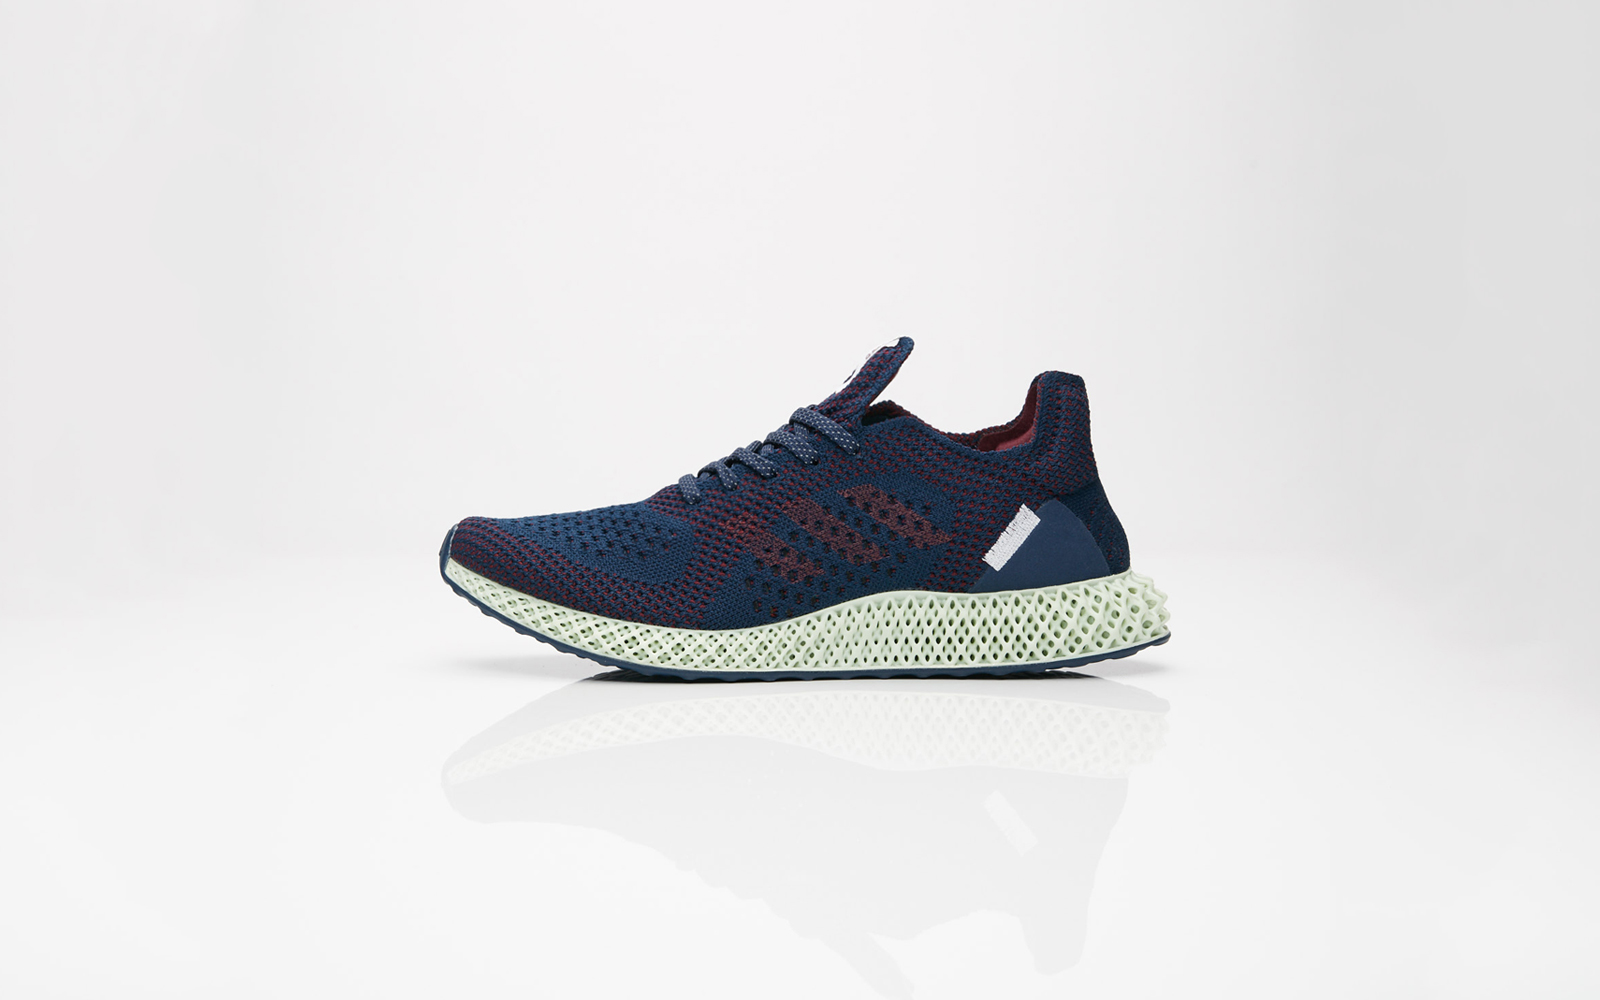 online store 5830a be984 adidas delivers a shoe fit for the future with the ADIDAS CONSORTIUM  FUTURECRAFT 4D SNEAKERSNSTUFF.